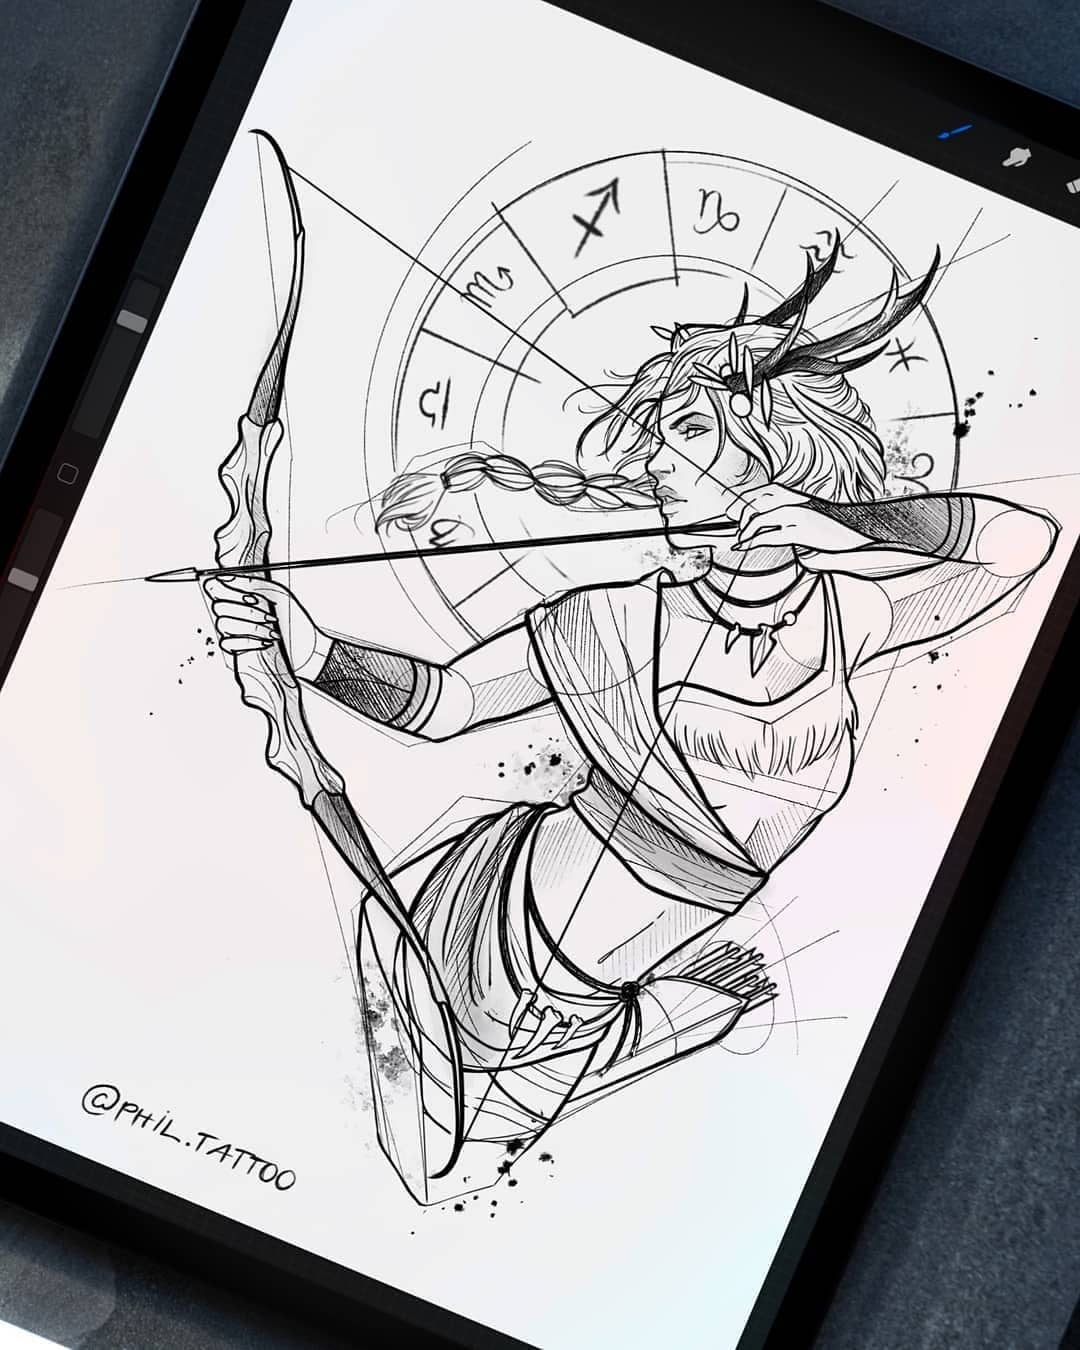 Sketch for a tattoo, a Sagittarius girl on the theme of the signs of the zodiac